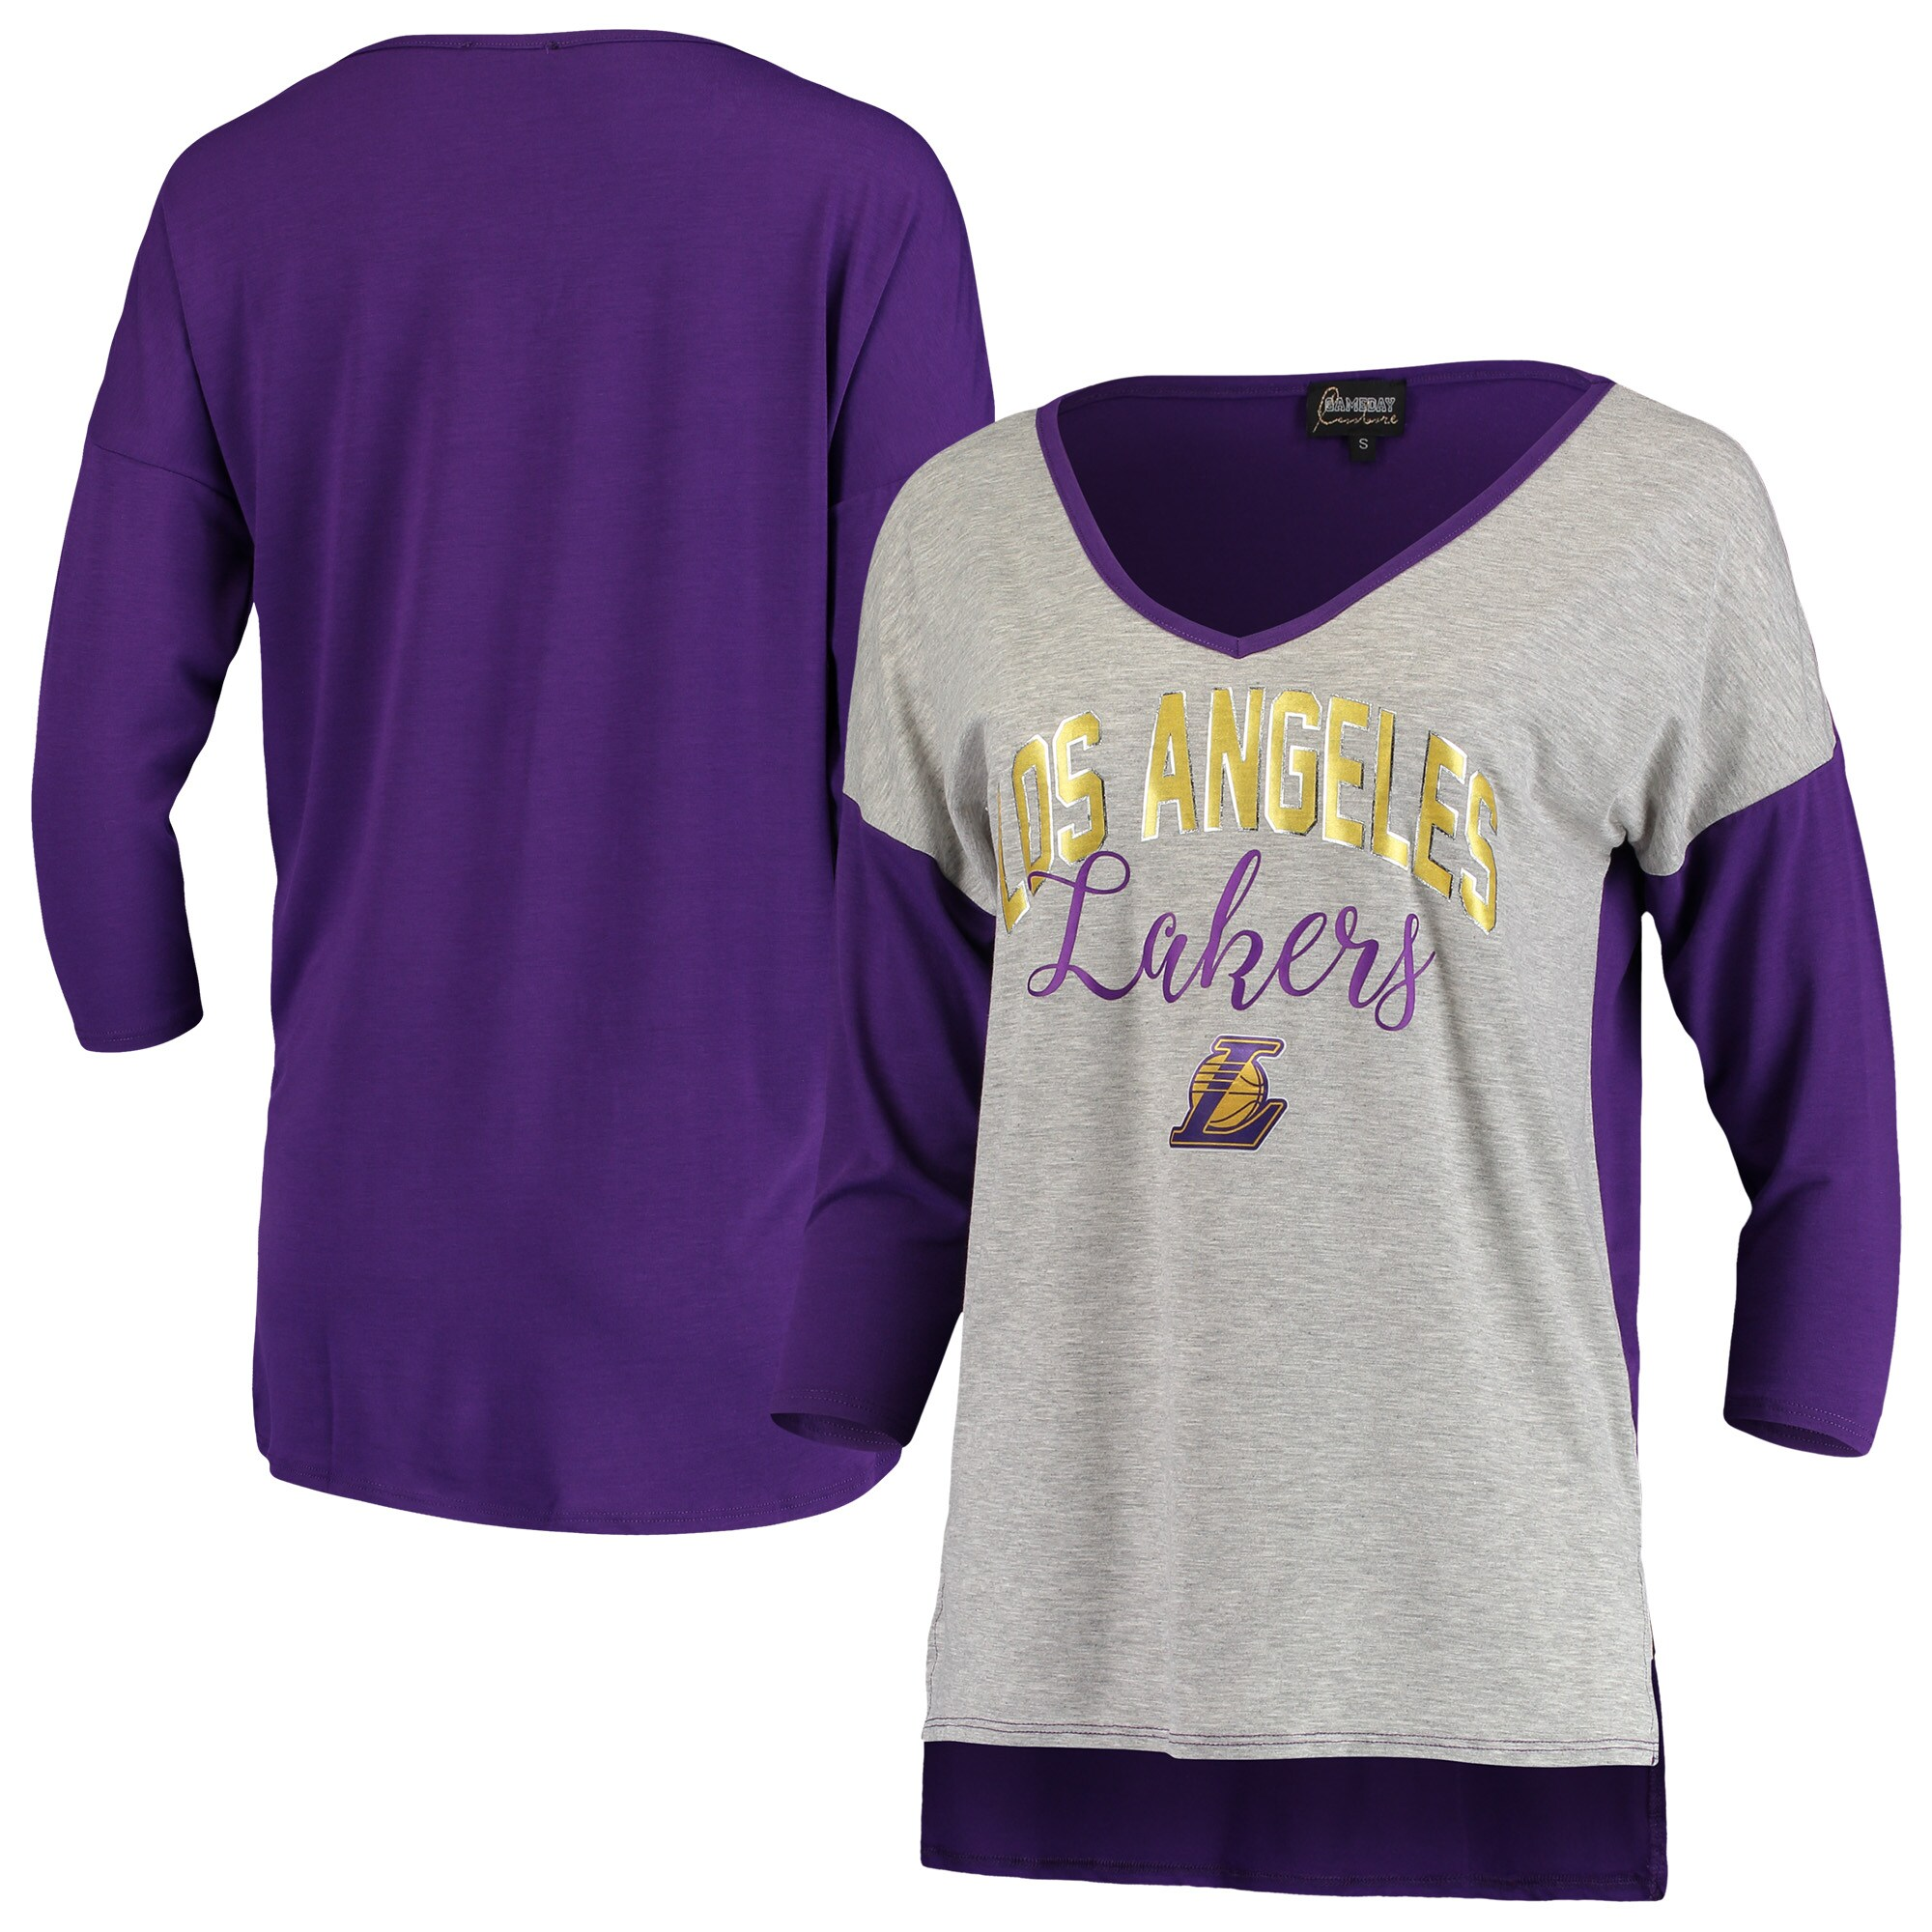 Los Angeles Lakers Women's Meet Your Match Colorblock 3/4-Sleeve Tri-Blend V-Neck T-Shirt - Heathered Gray